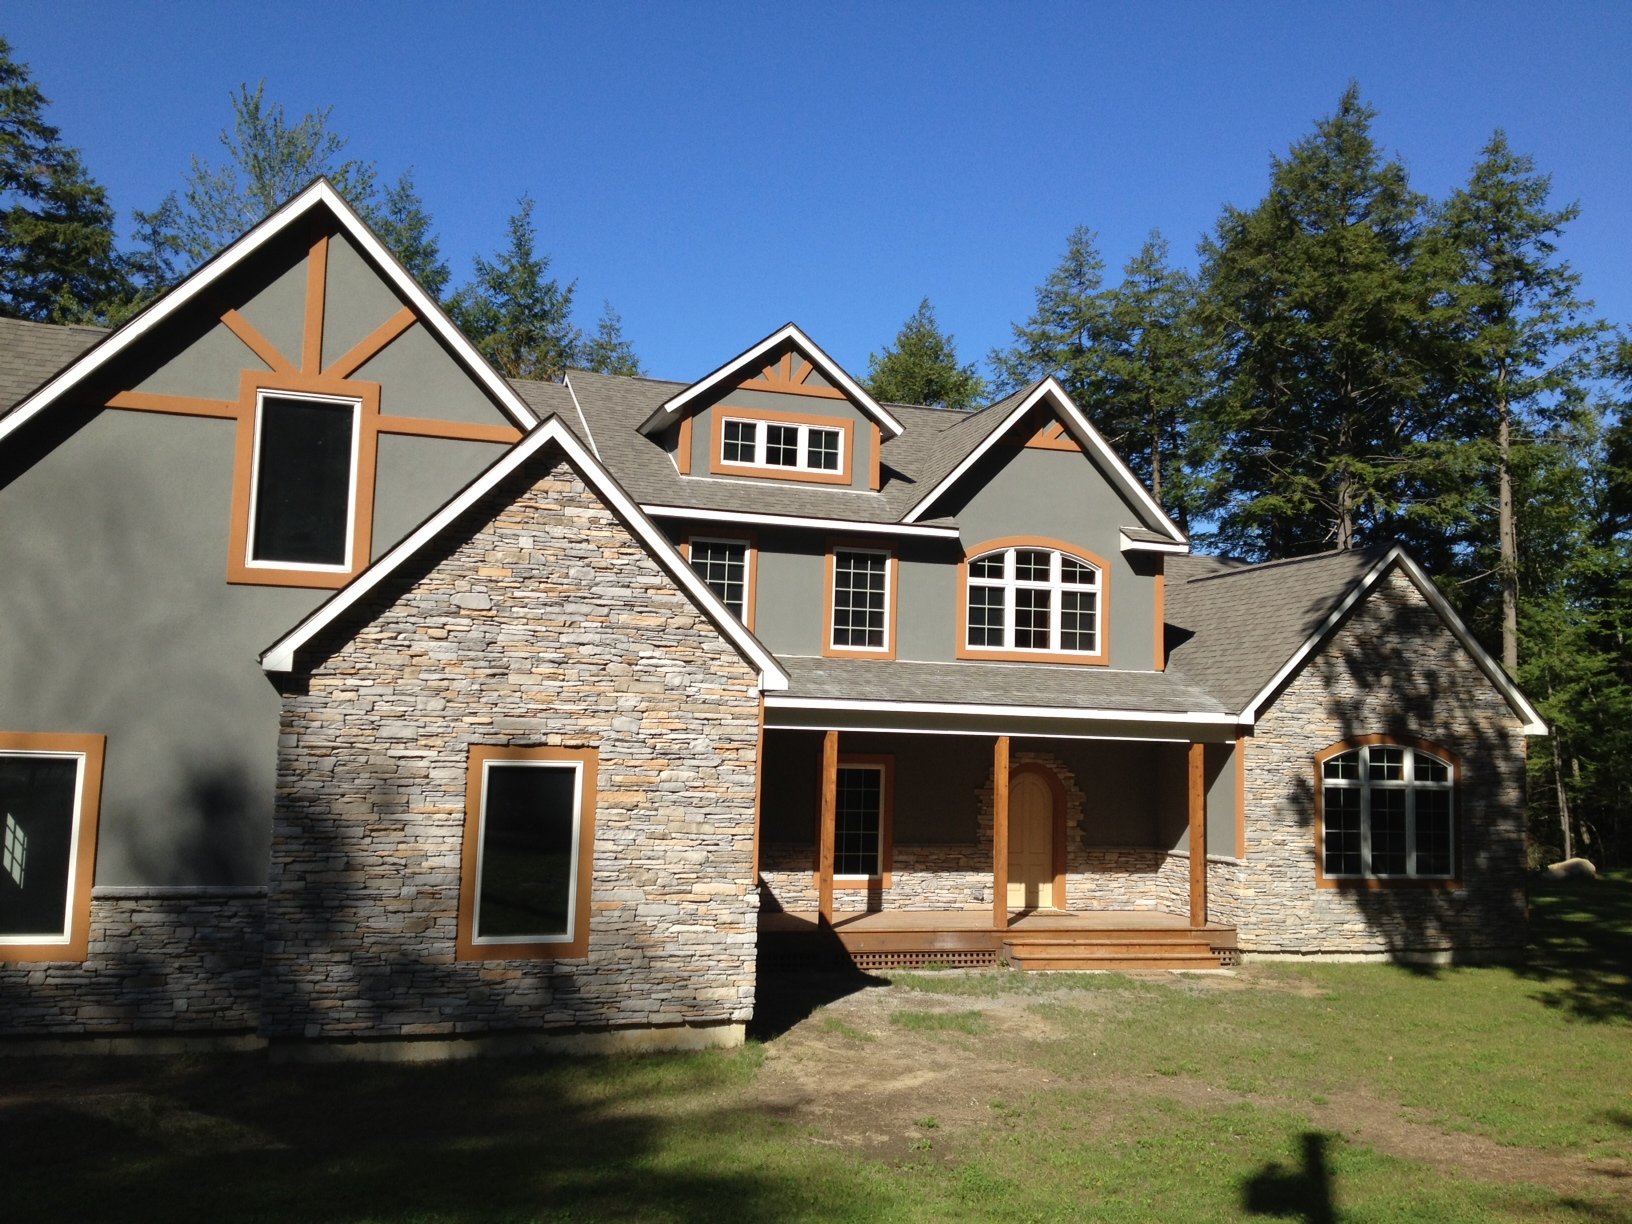 Custom modular homes saratoga construction llc - New home construction designs ...